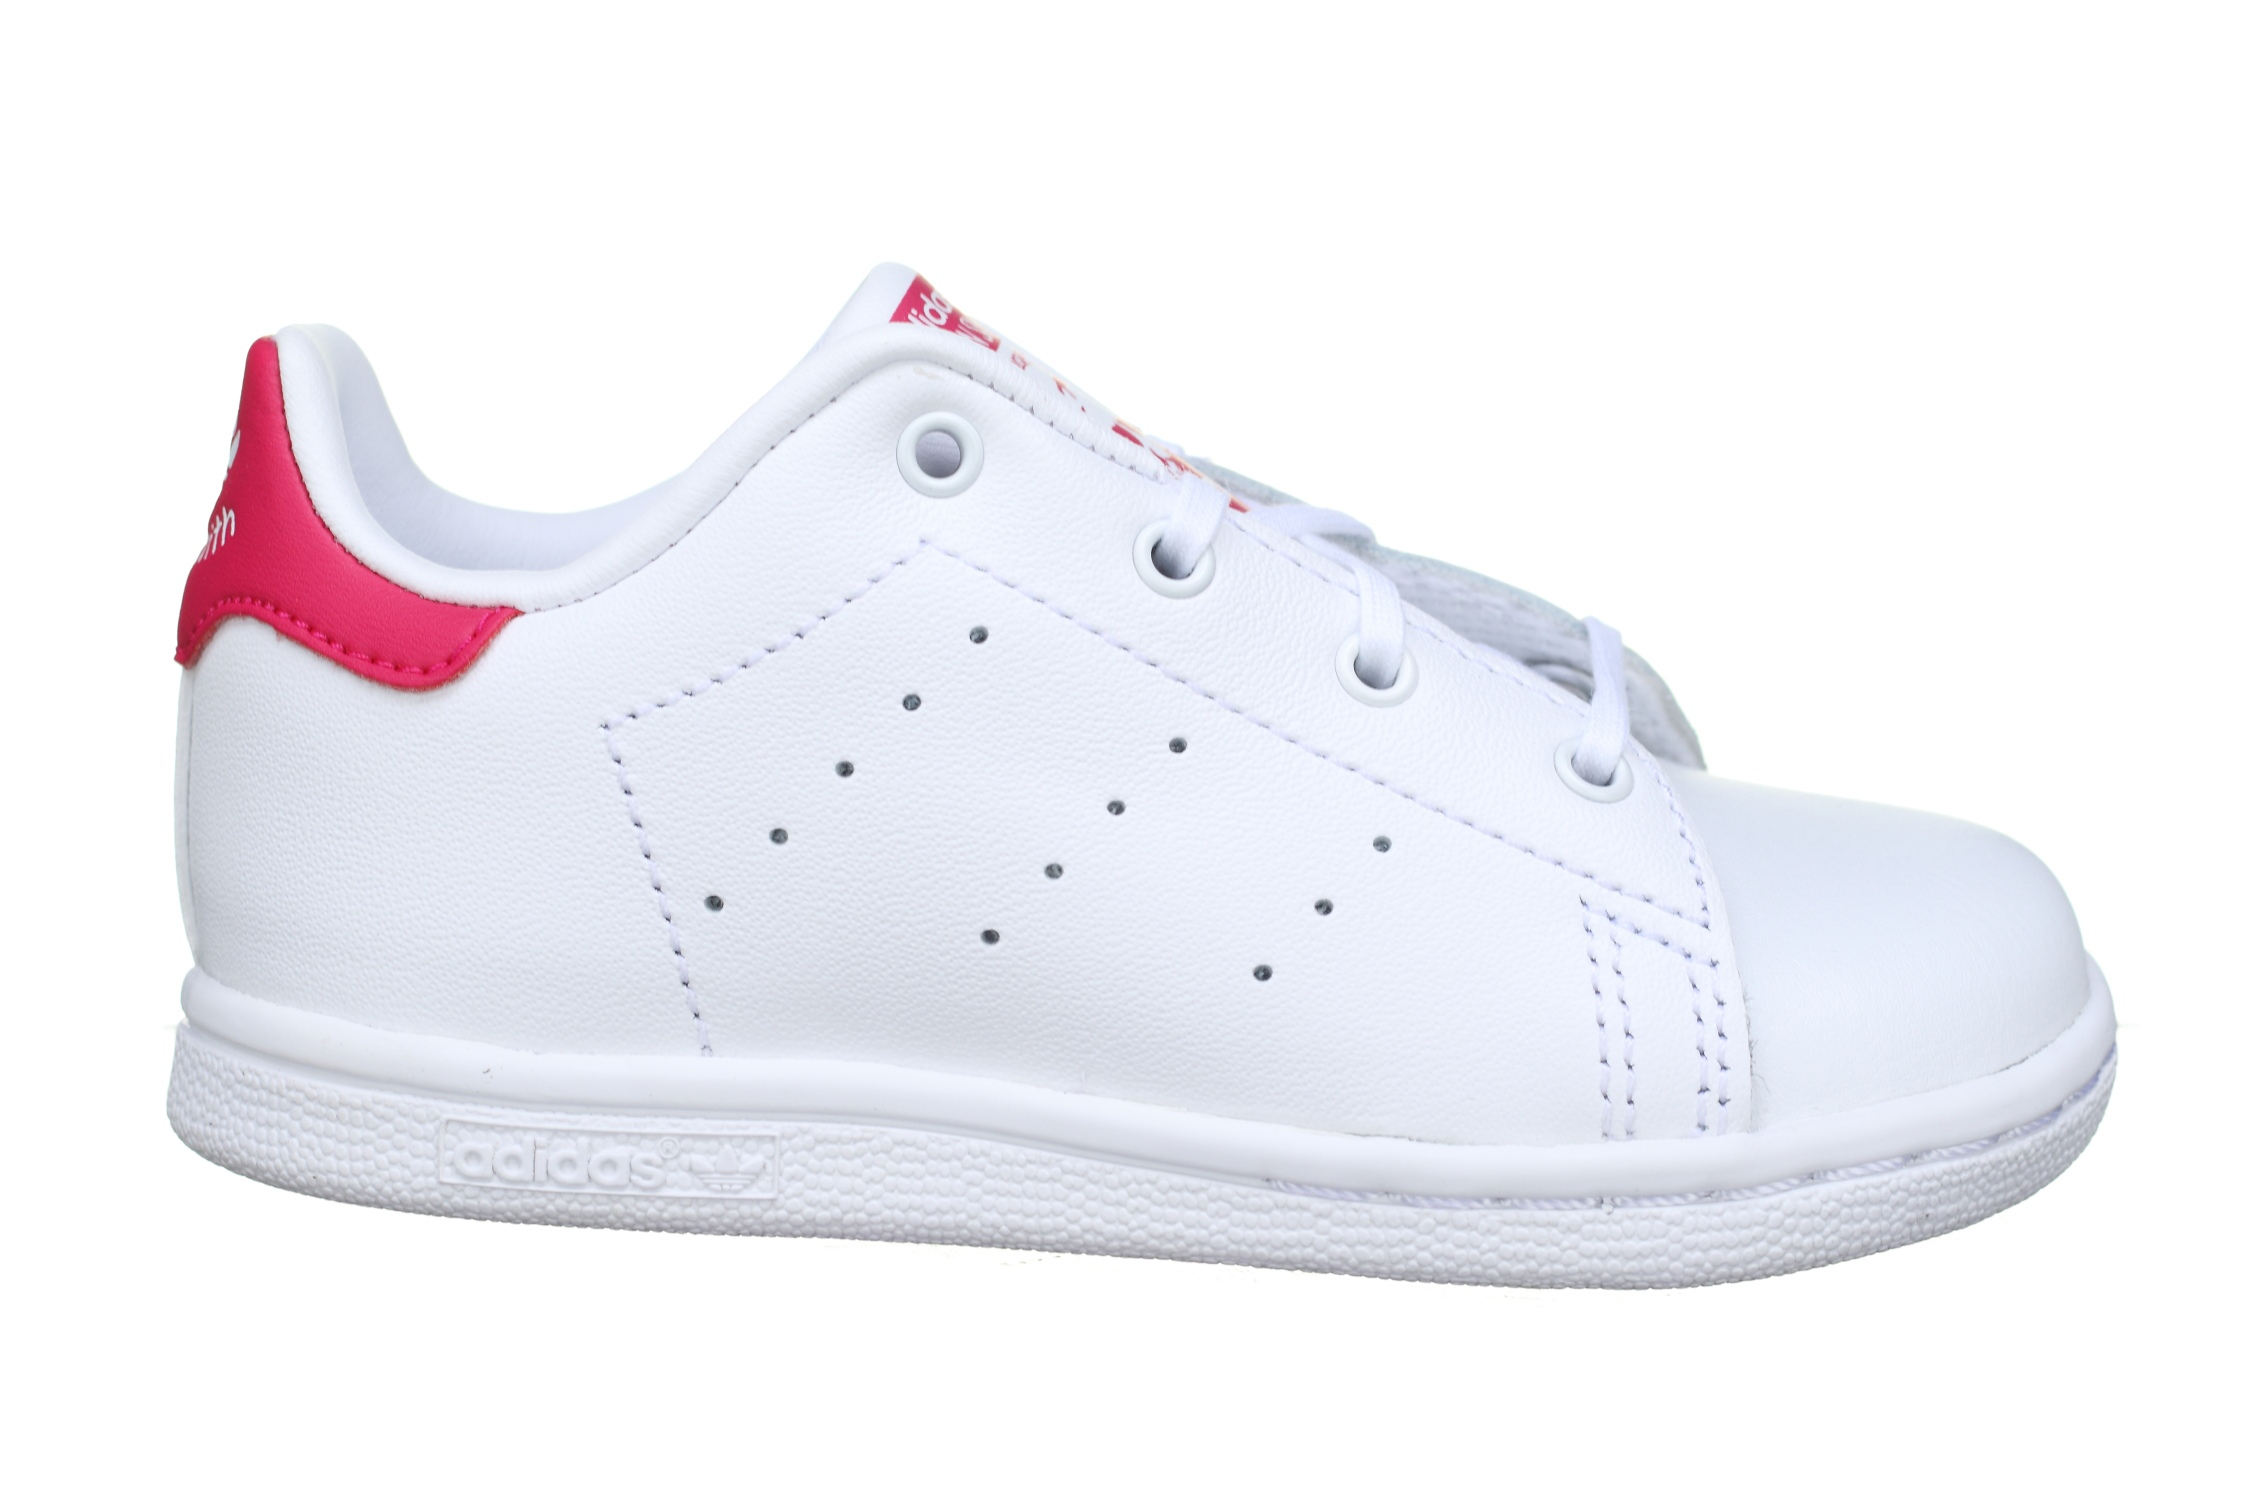 http://www.leadermode.com/164696/adidas-stan-smith-i-bb2999-blanc-rose.jpg